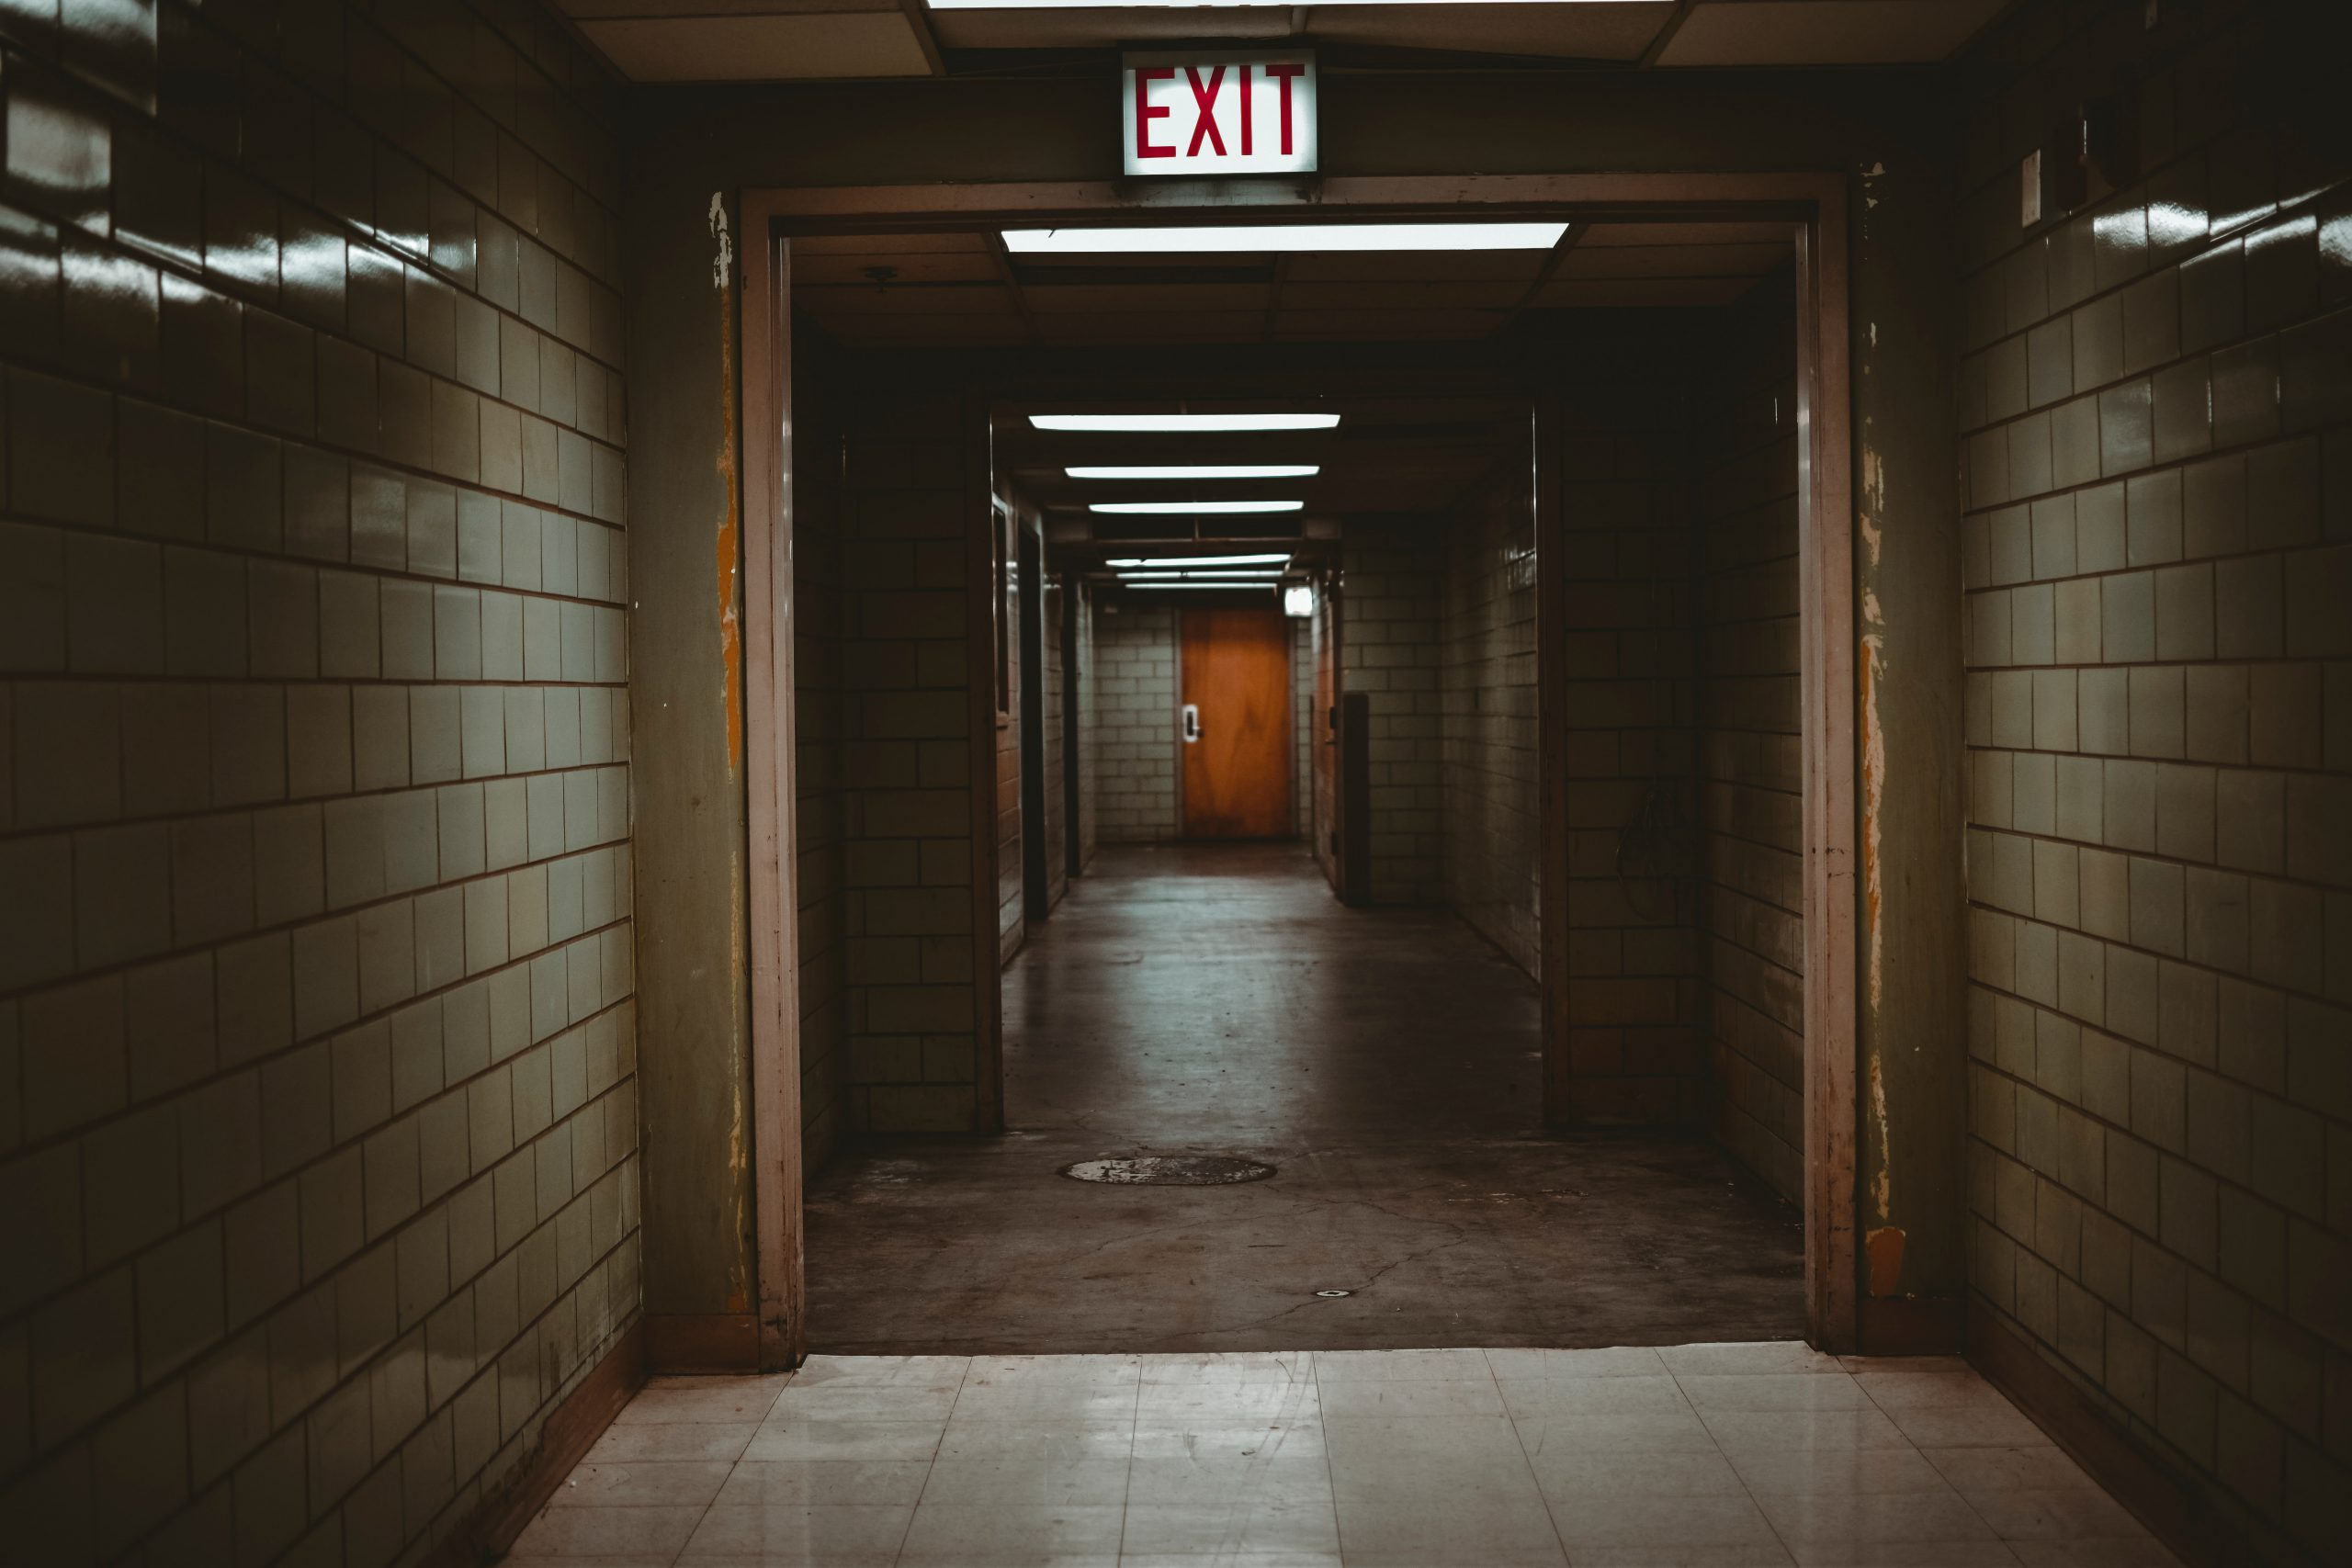 landlord has responsibility for tenant safety in this dark hallway